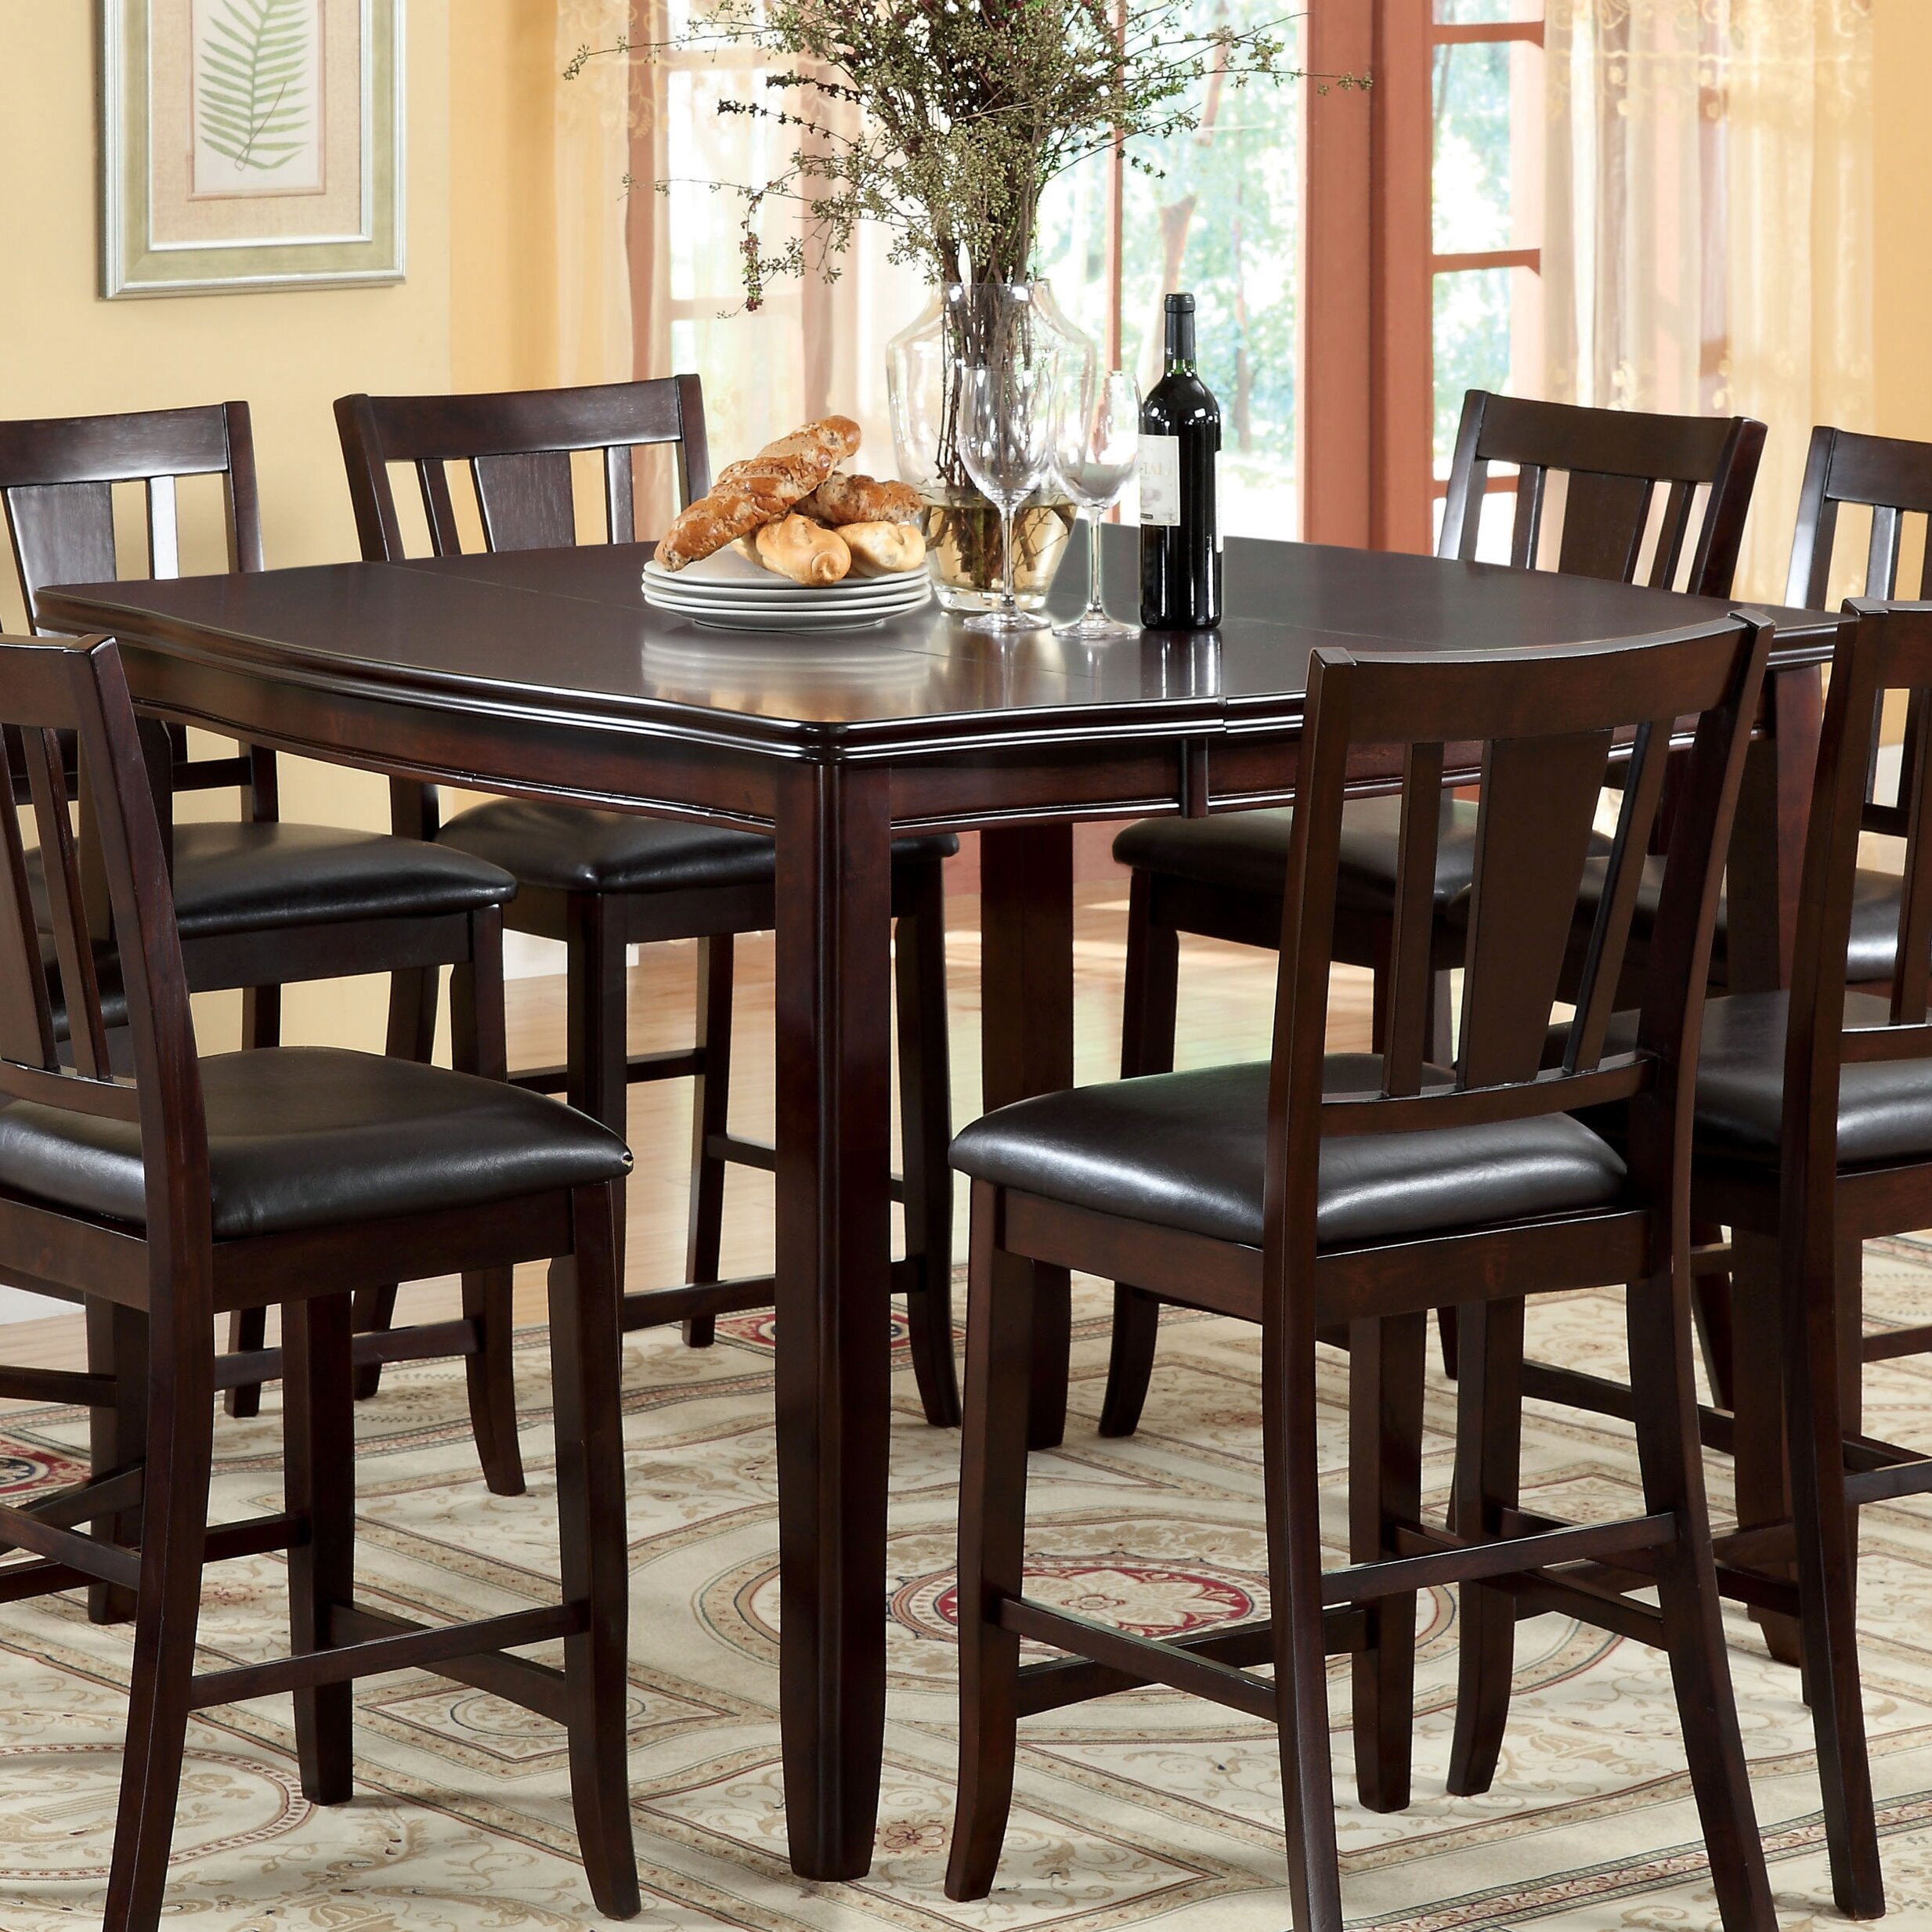 Hokku designs nappa 7 piece counter height dining set for 7 piece dining set